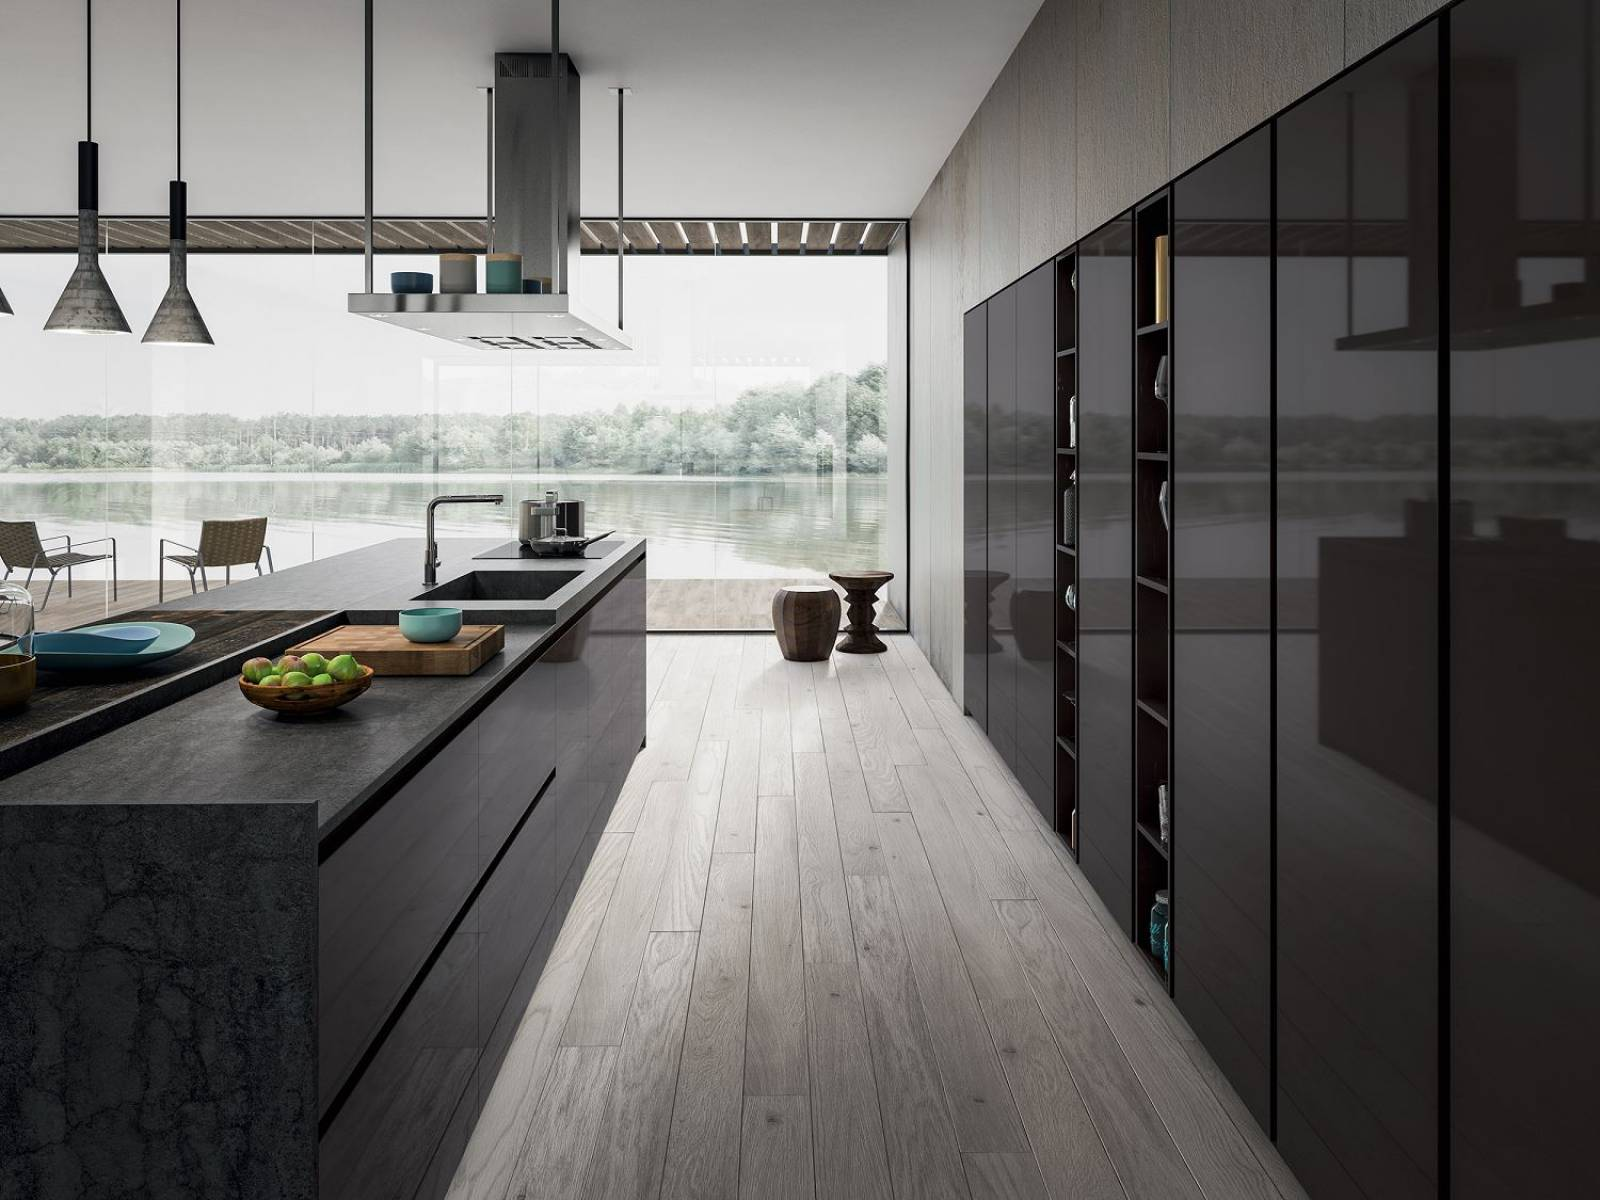 cuisine italienne moderne en laqu brillant design cuisines. Black Bedroom Furniture Sets. Home Design Ideas